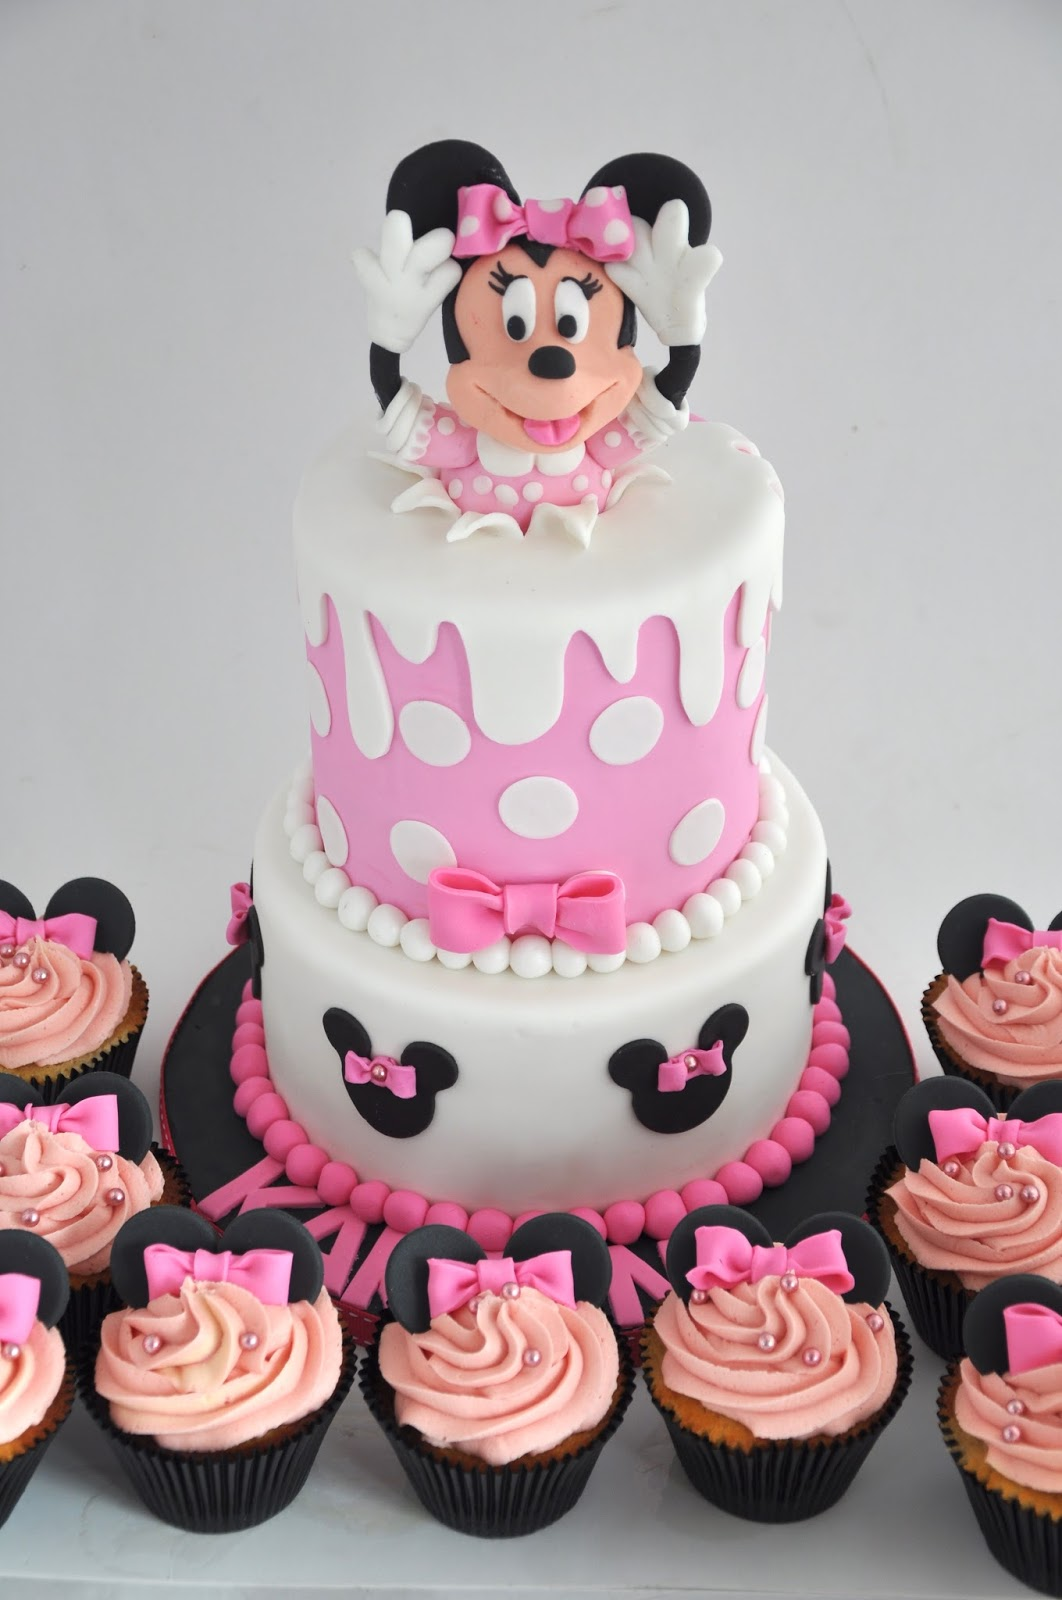 Rozannes Cakes Minnie mouse birthday cake and cupcakes